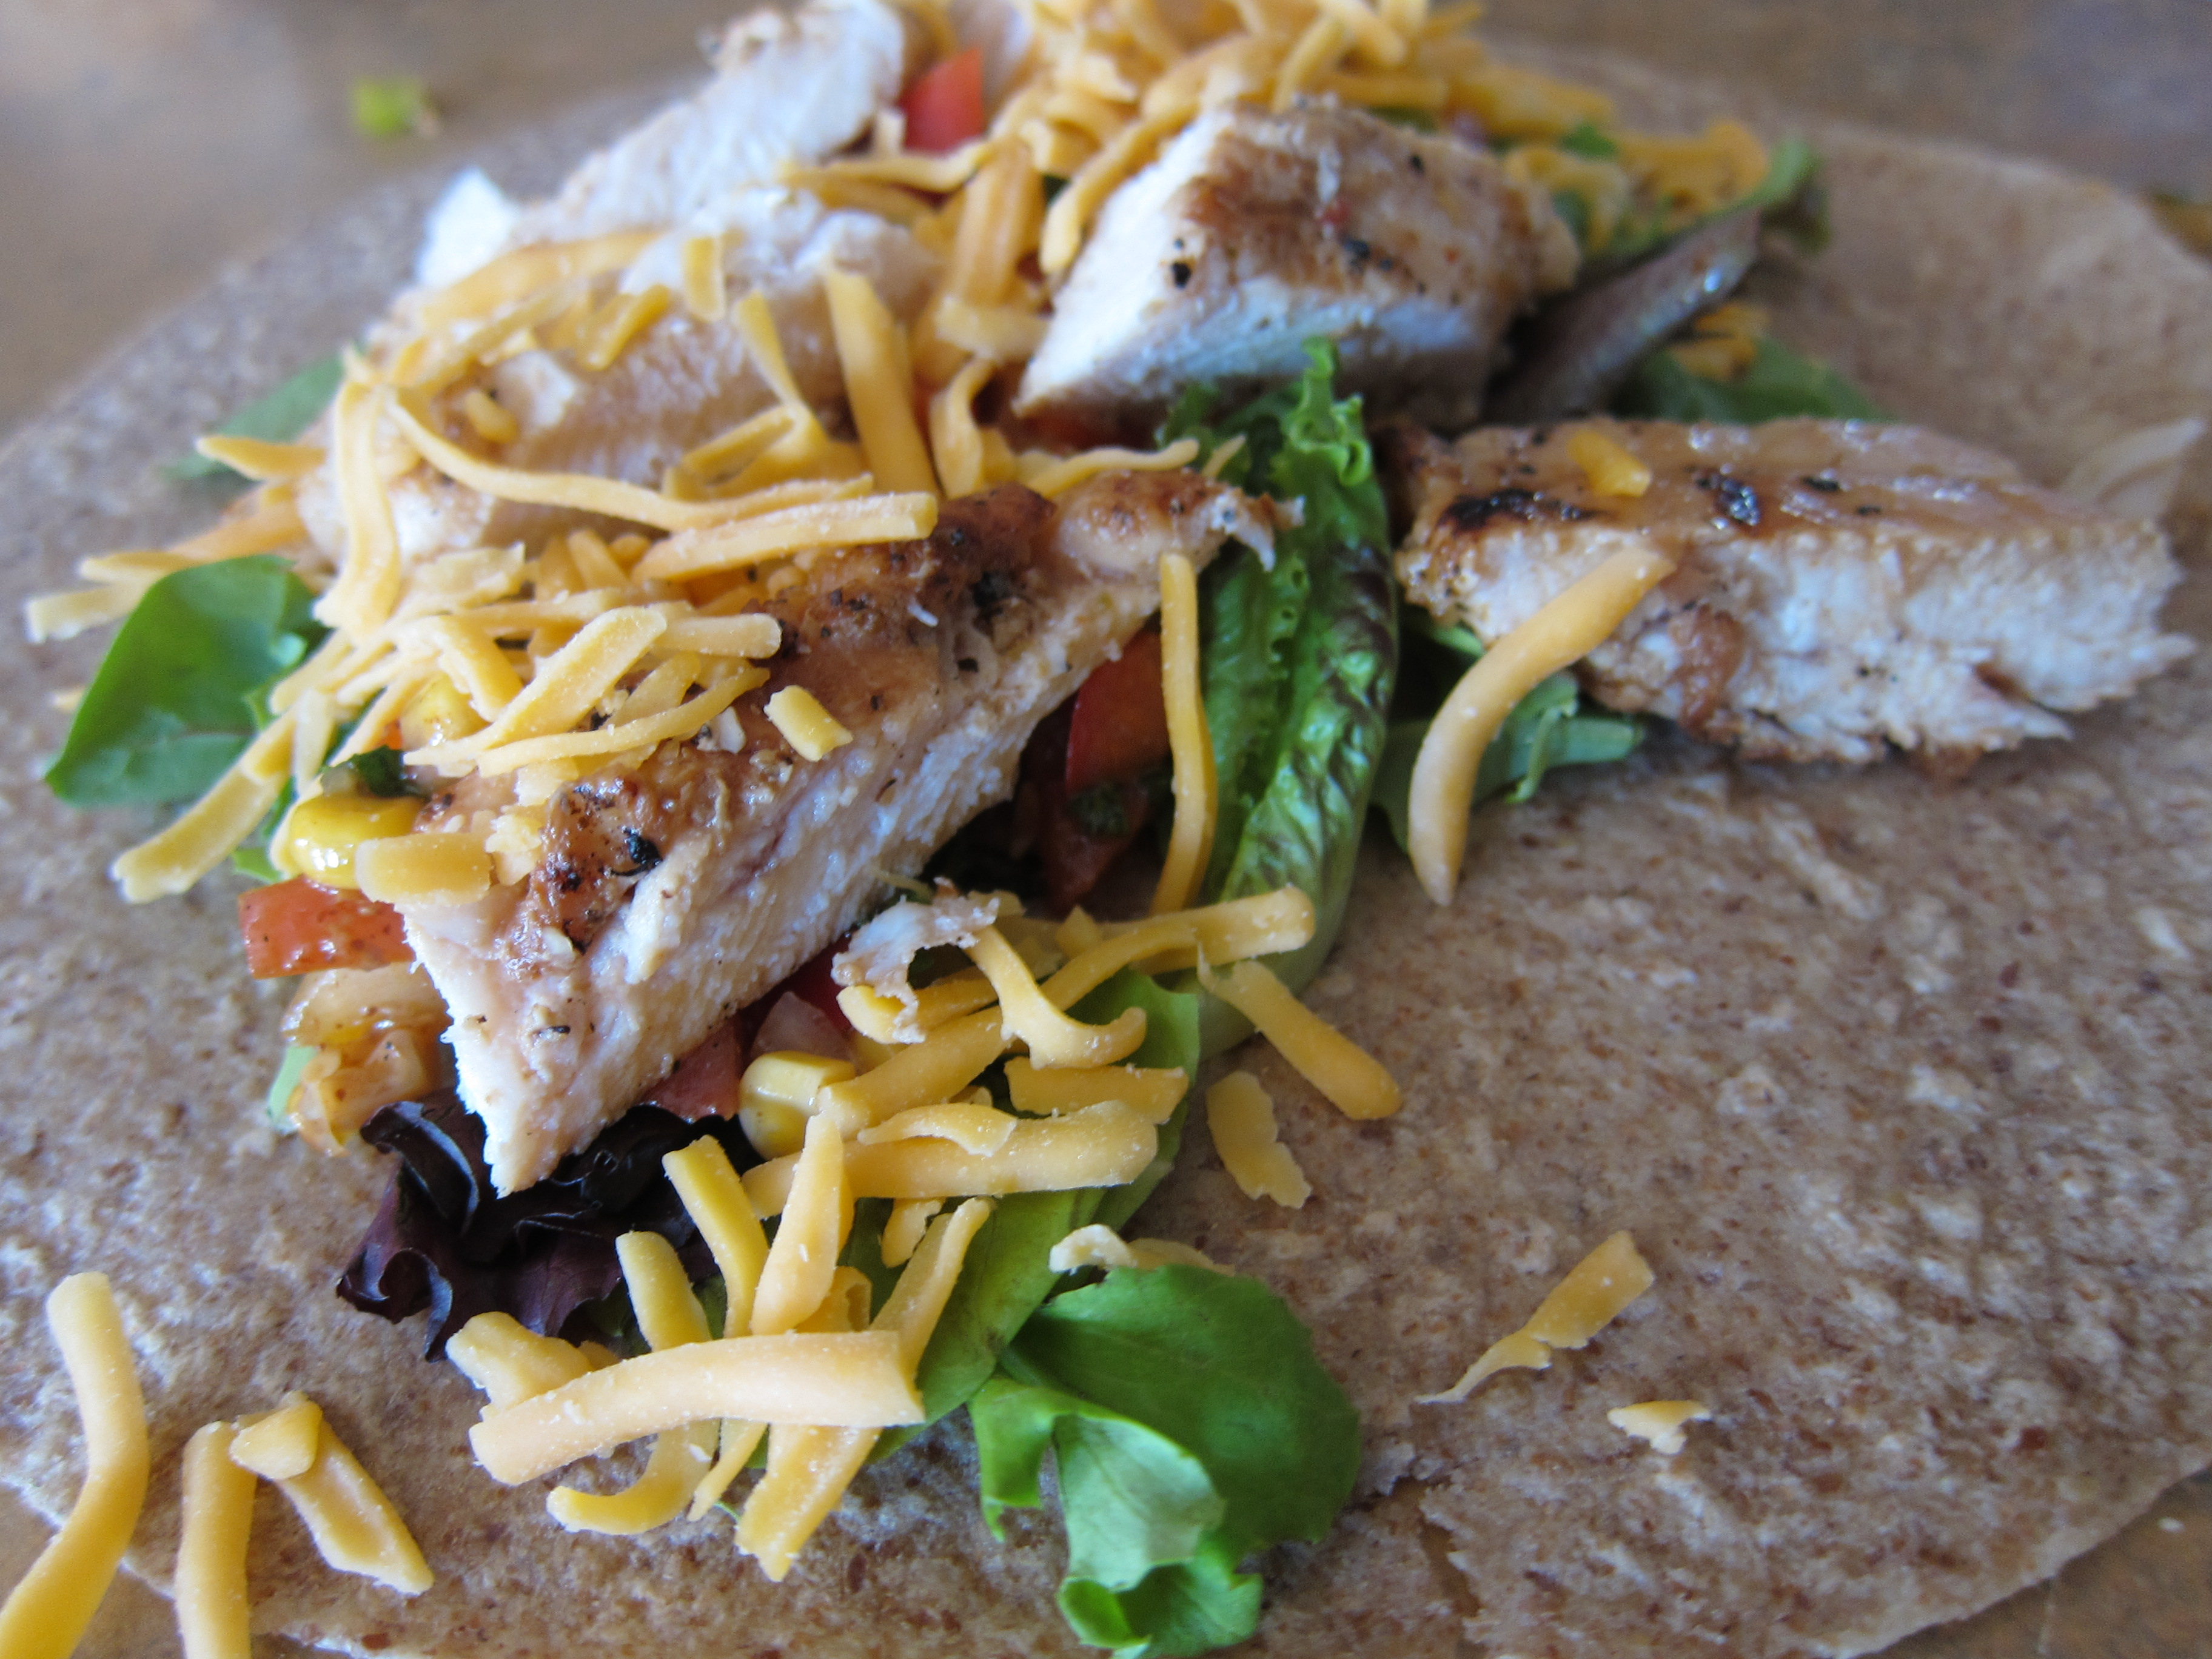 It's a WRAP! Lime- Grilled Chicken Mexi Paninis